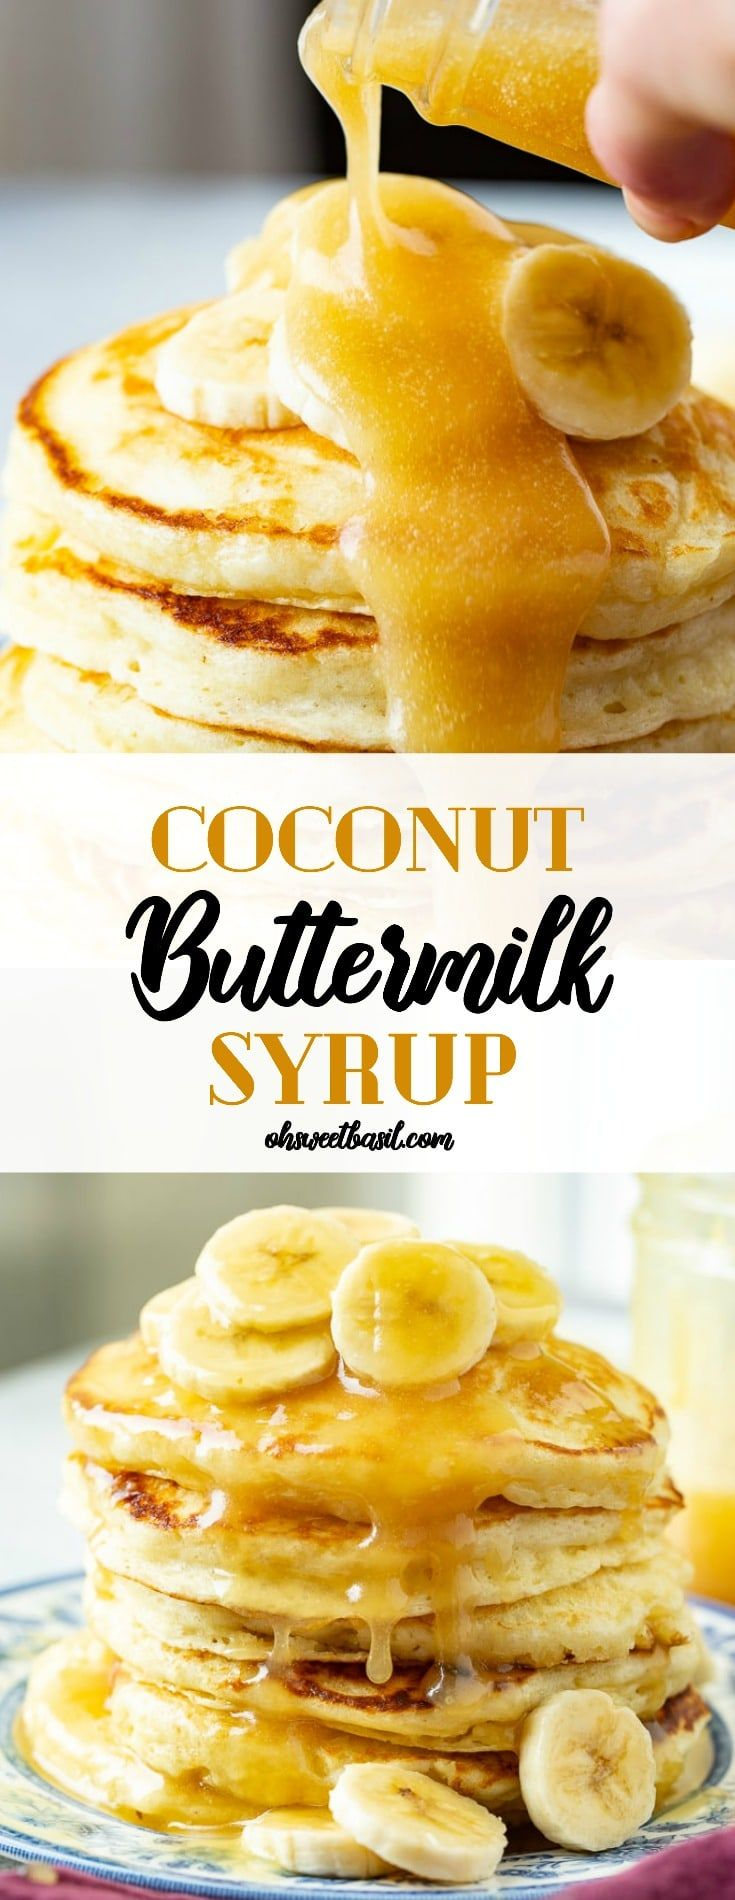 Coconut Buttermilk Syrup Recipe Buttermilk Syrup Syrup Recipe Recipes